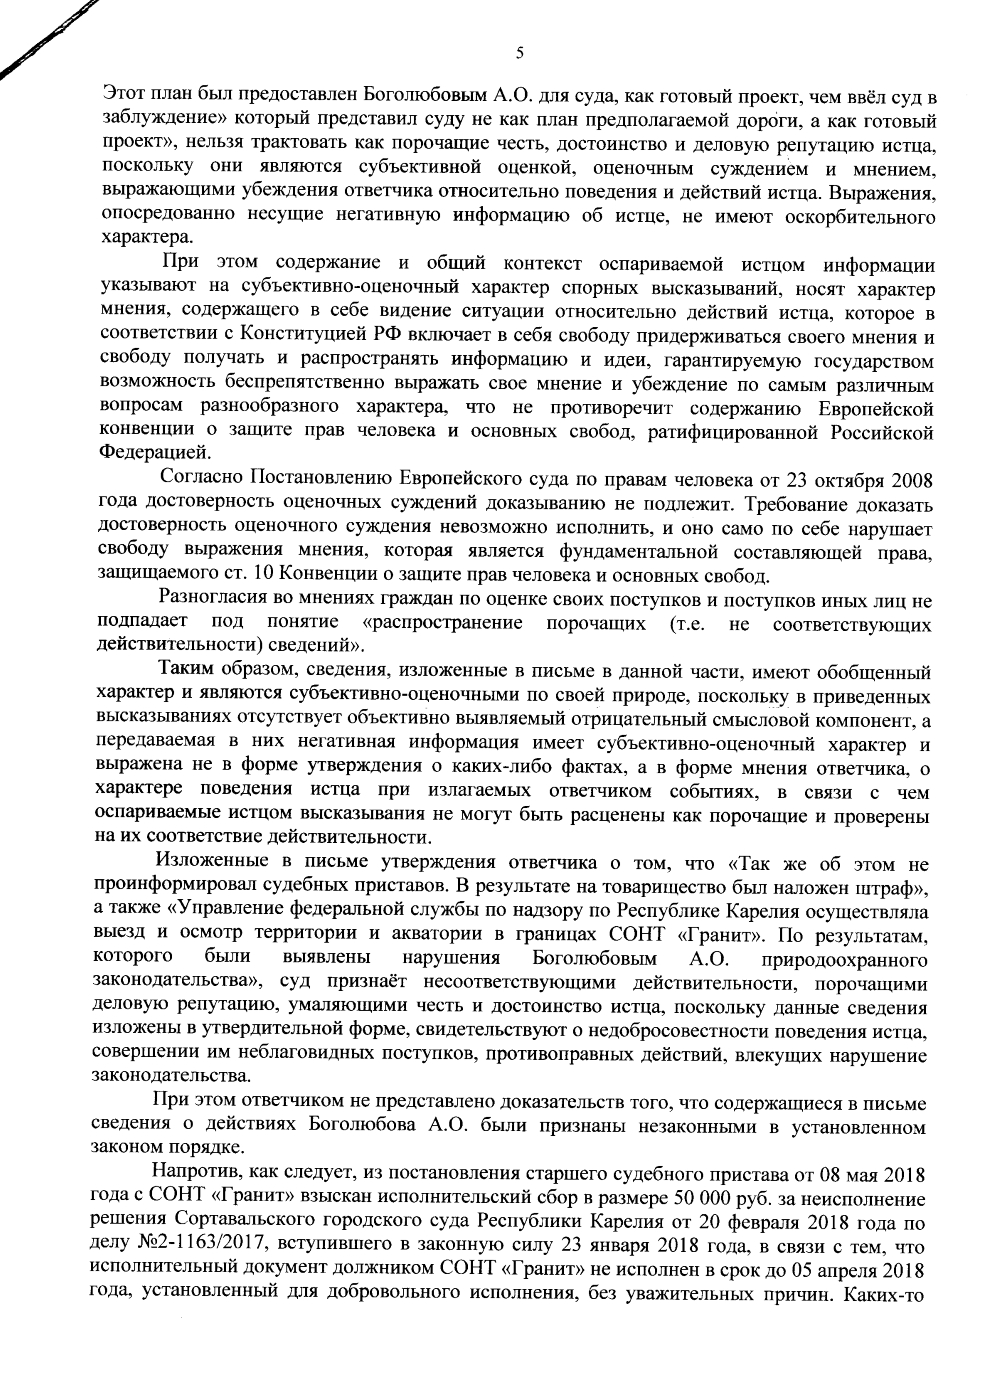 https://sontgranit.ru/forum/img/20190109-6.png